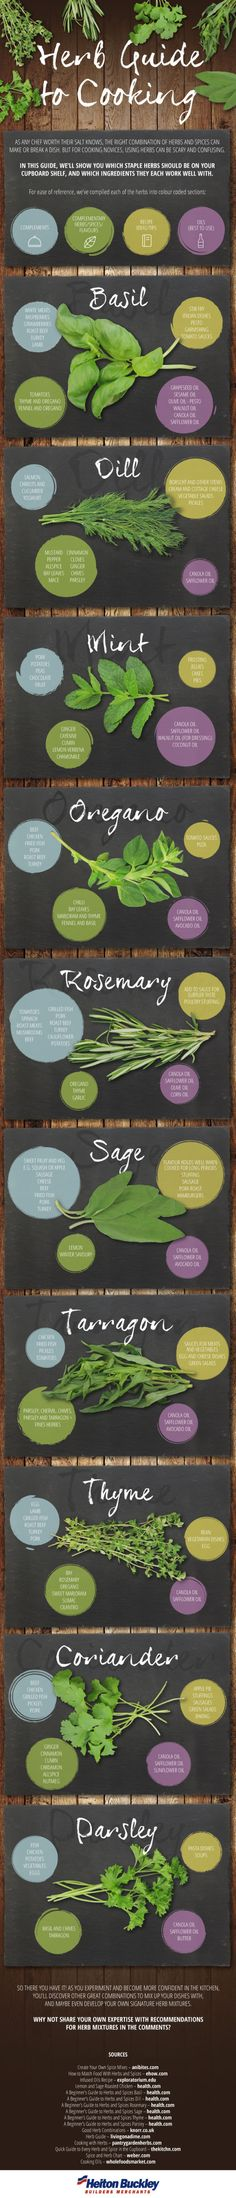 """A Herb Guide to Cooking! Using herbs in your recipes can elevate your dish from """"Tastes Good"""" to """"This Tastes AMAZING""""! This chart helped me experiment a little more confidently when using herbs!"""